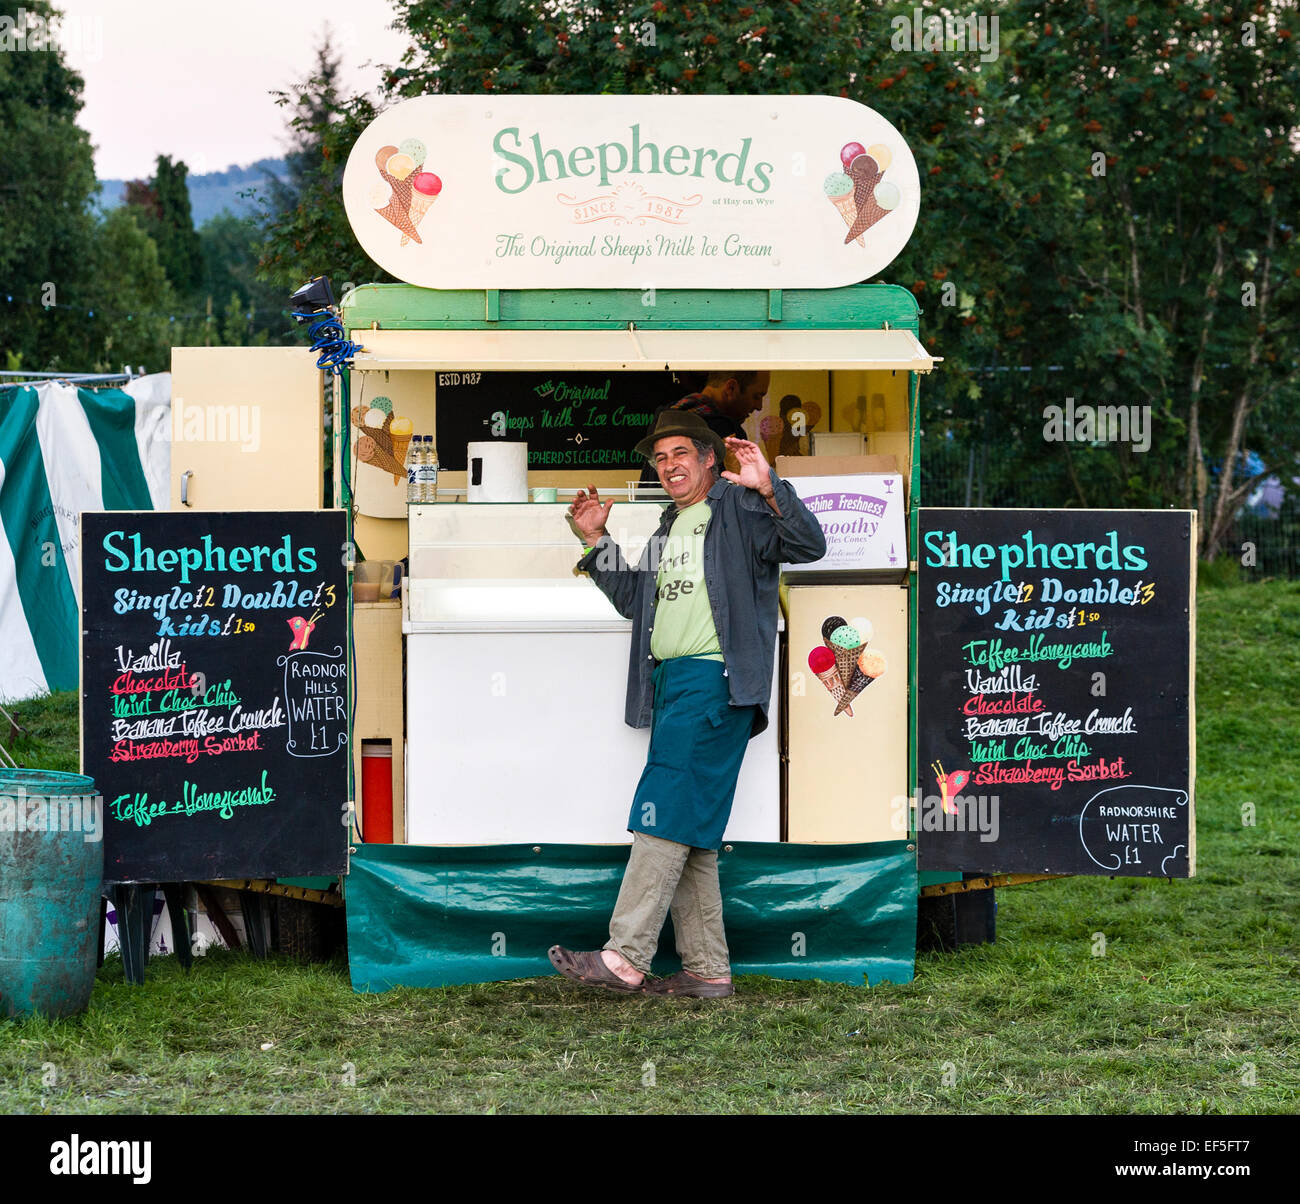 Martin Orbach, founder of Shepherds, the original sheeps' milk ice cream company, at the Sheep Music festival - Stock Image